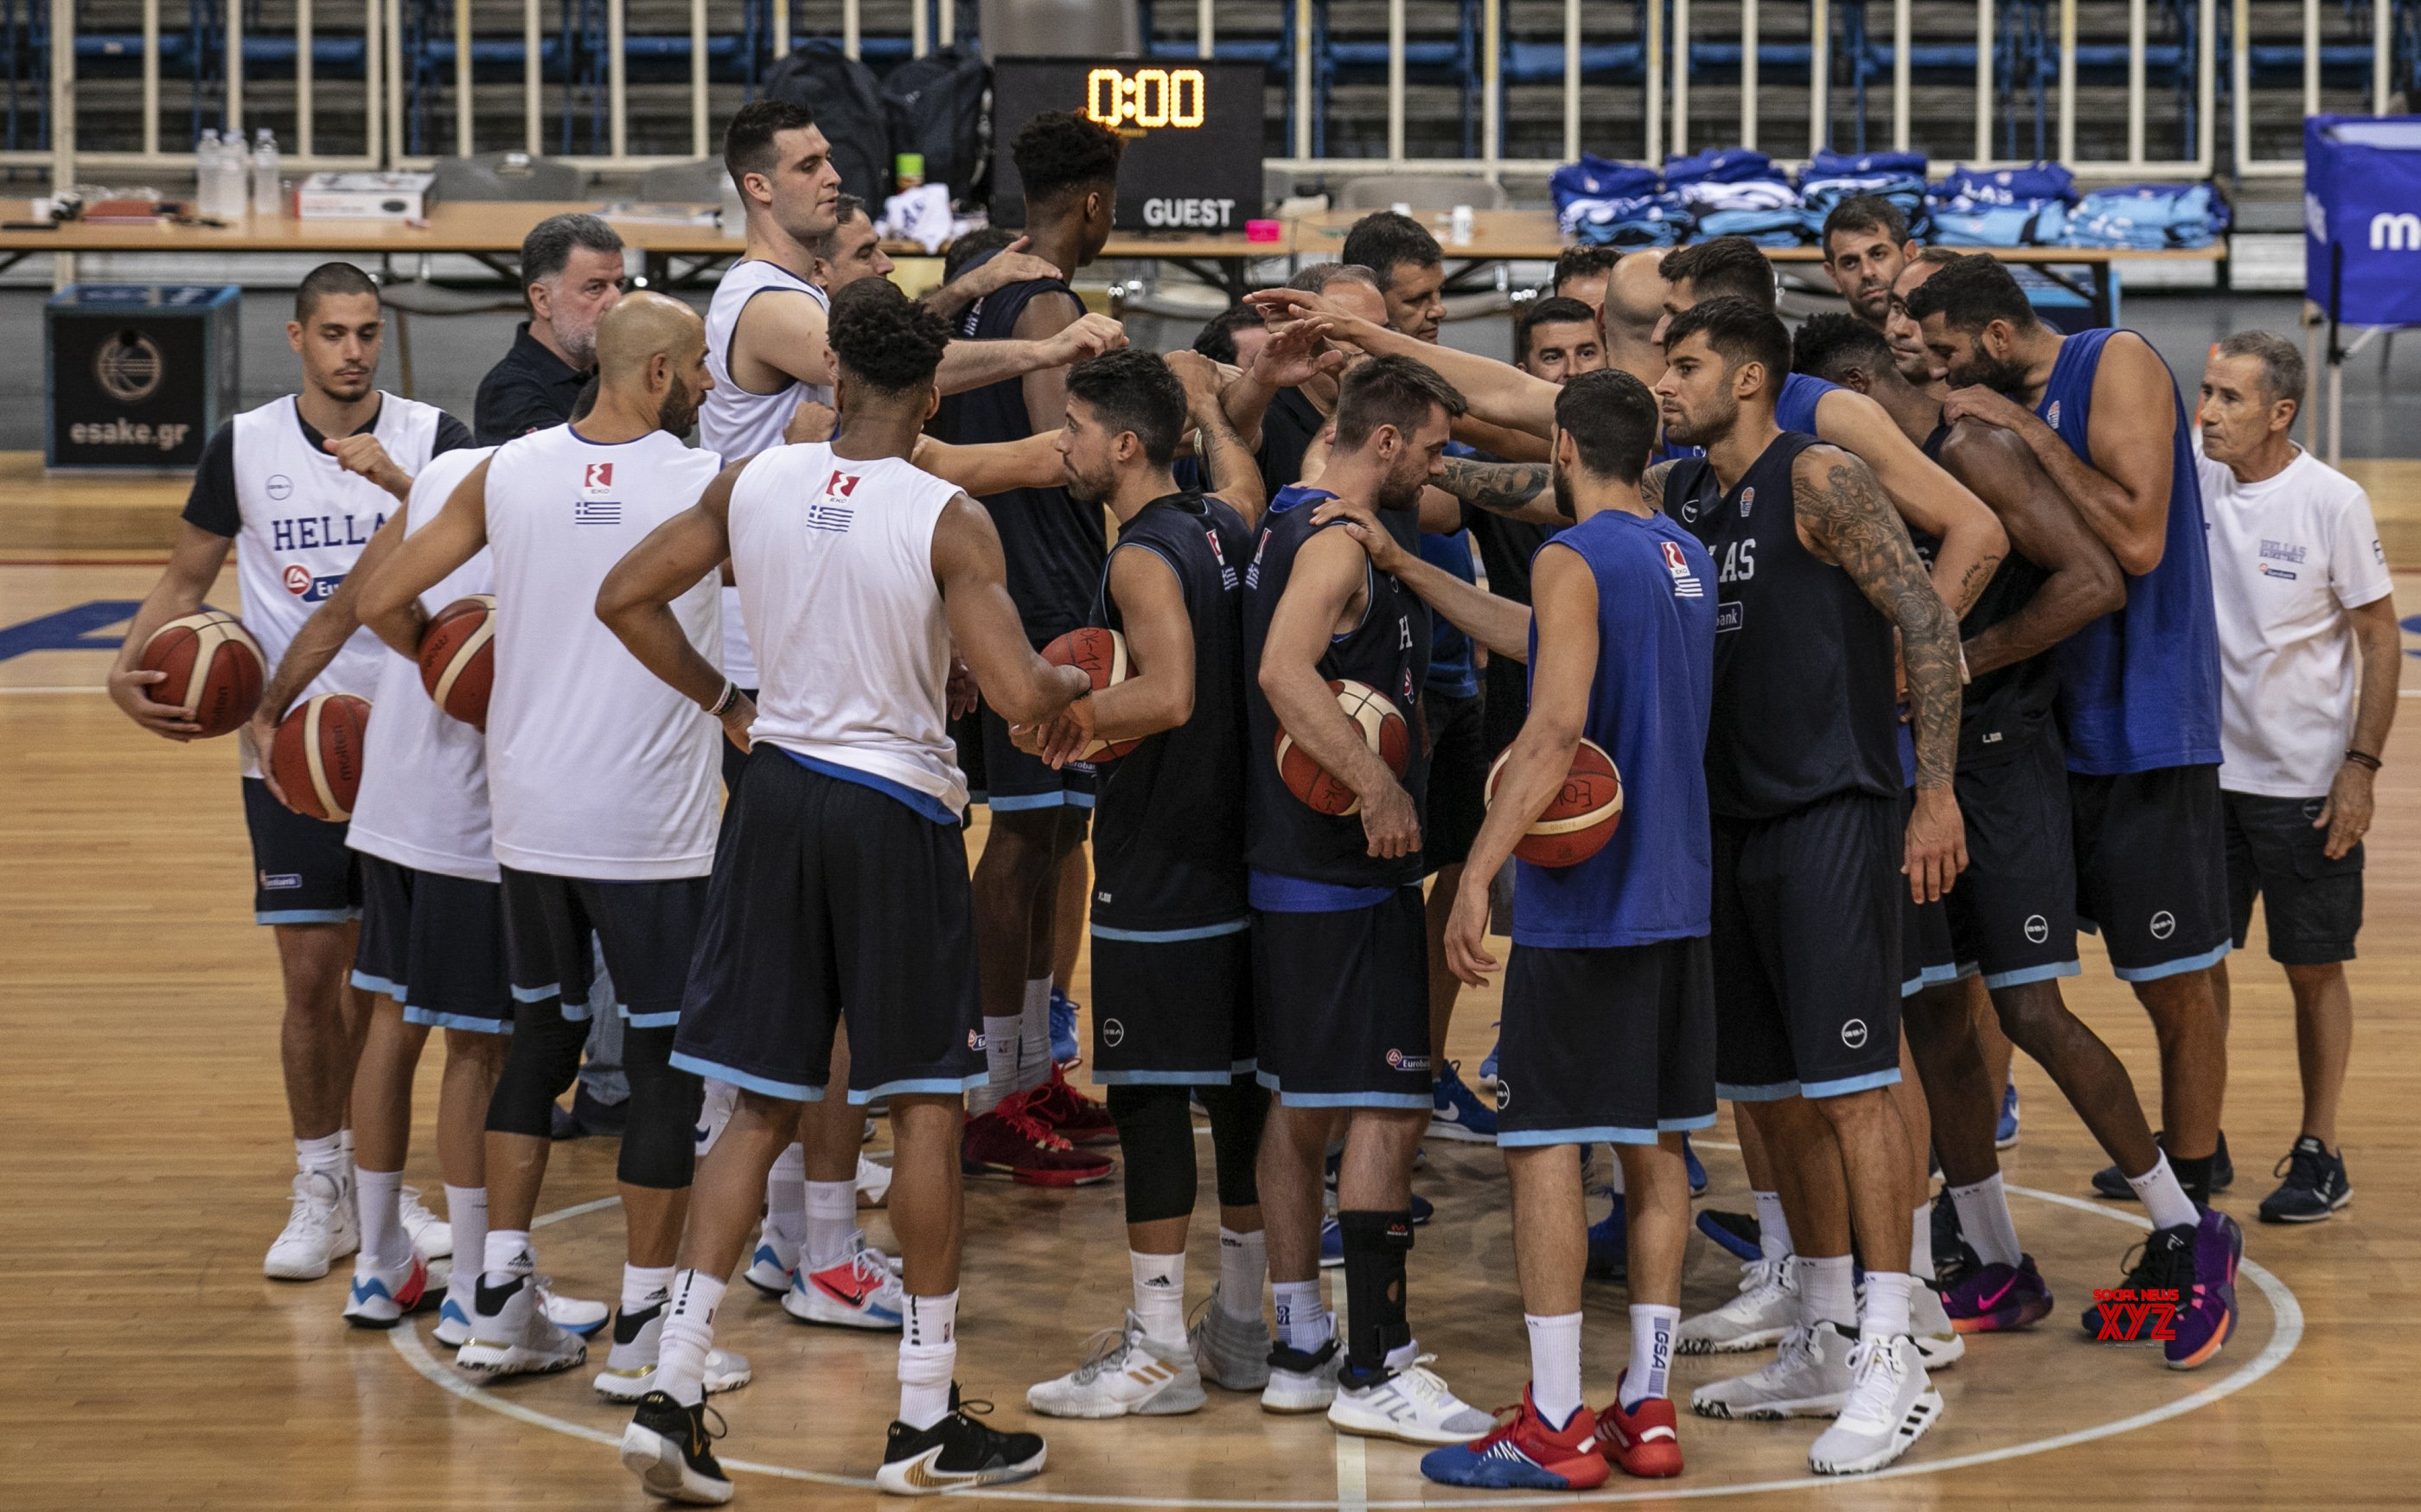 GREECE - ATHENS - GREEK NATIONAL BASKETBALL TEAM - TRAINING SESSION #Gallery